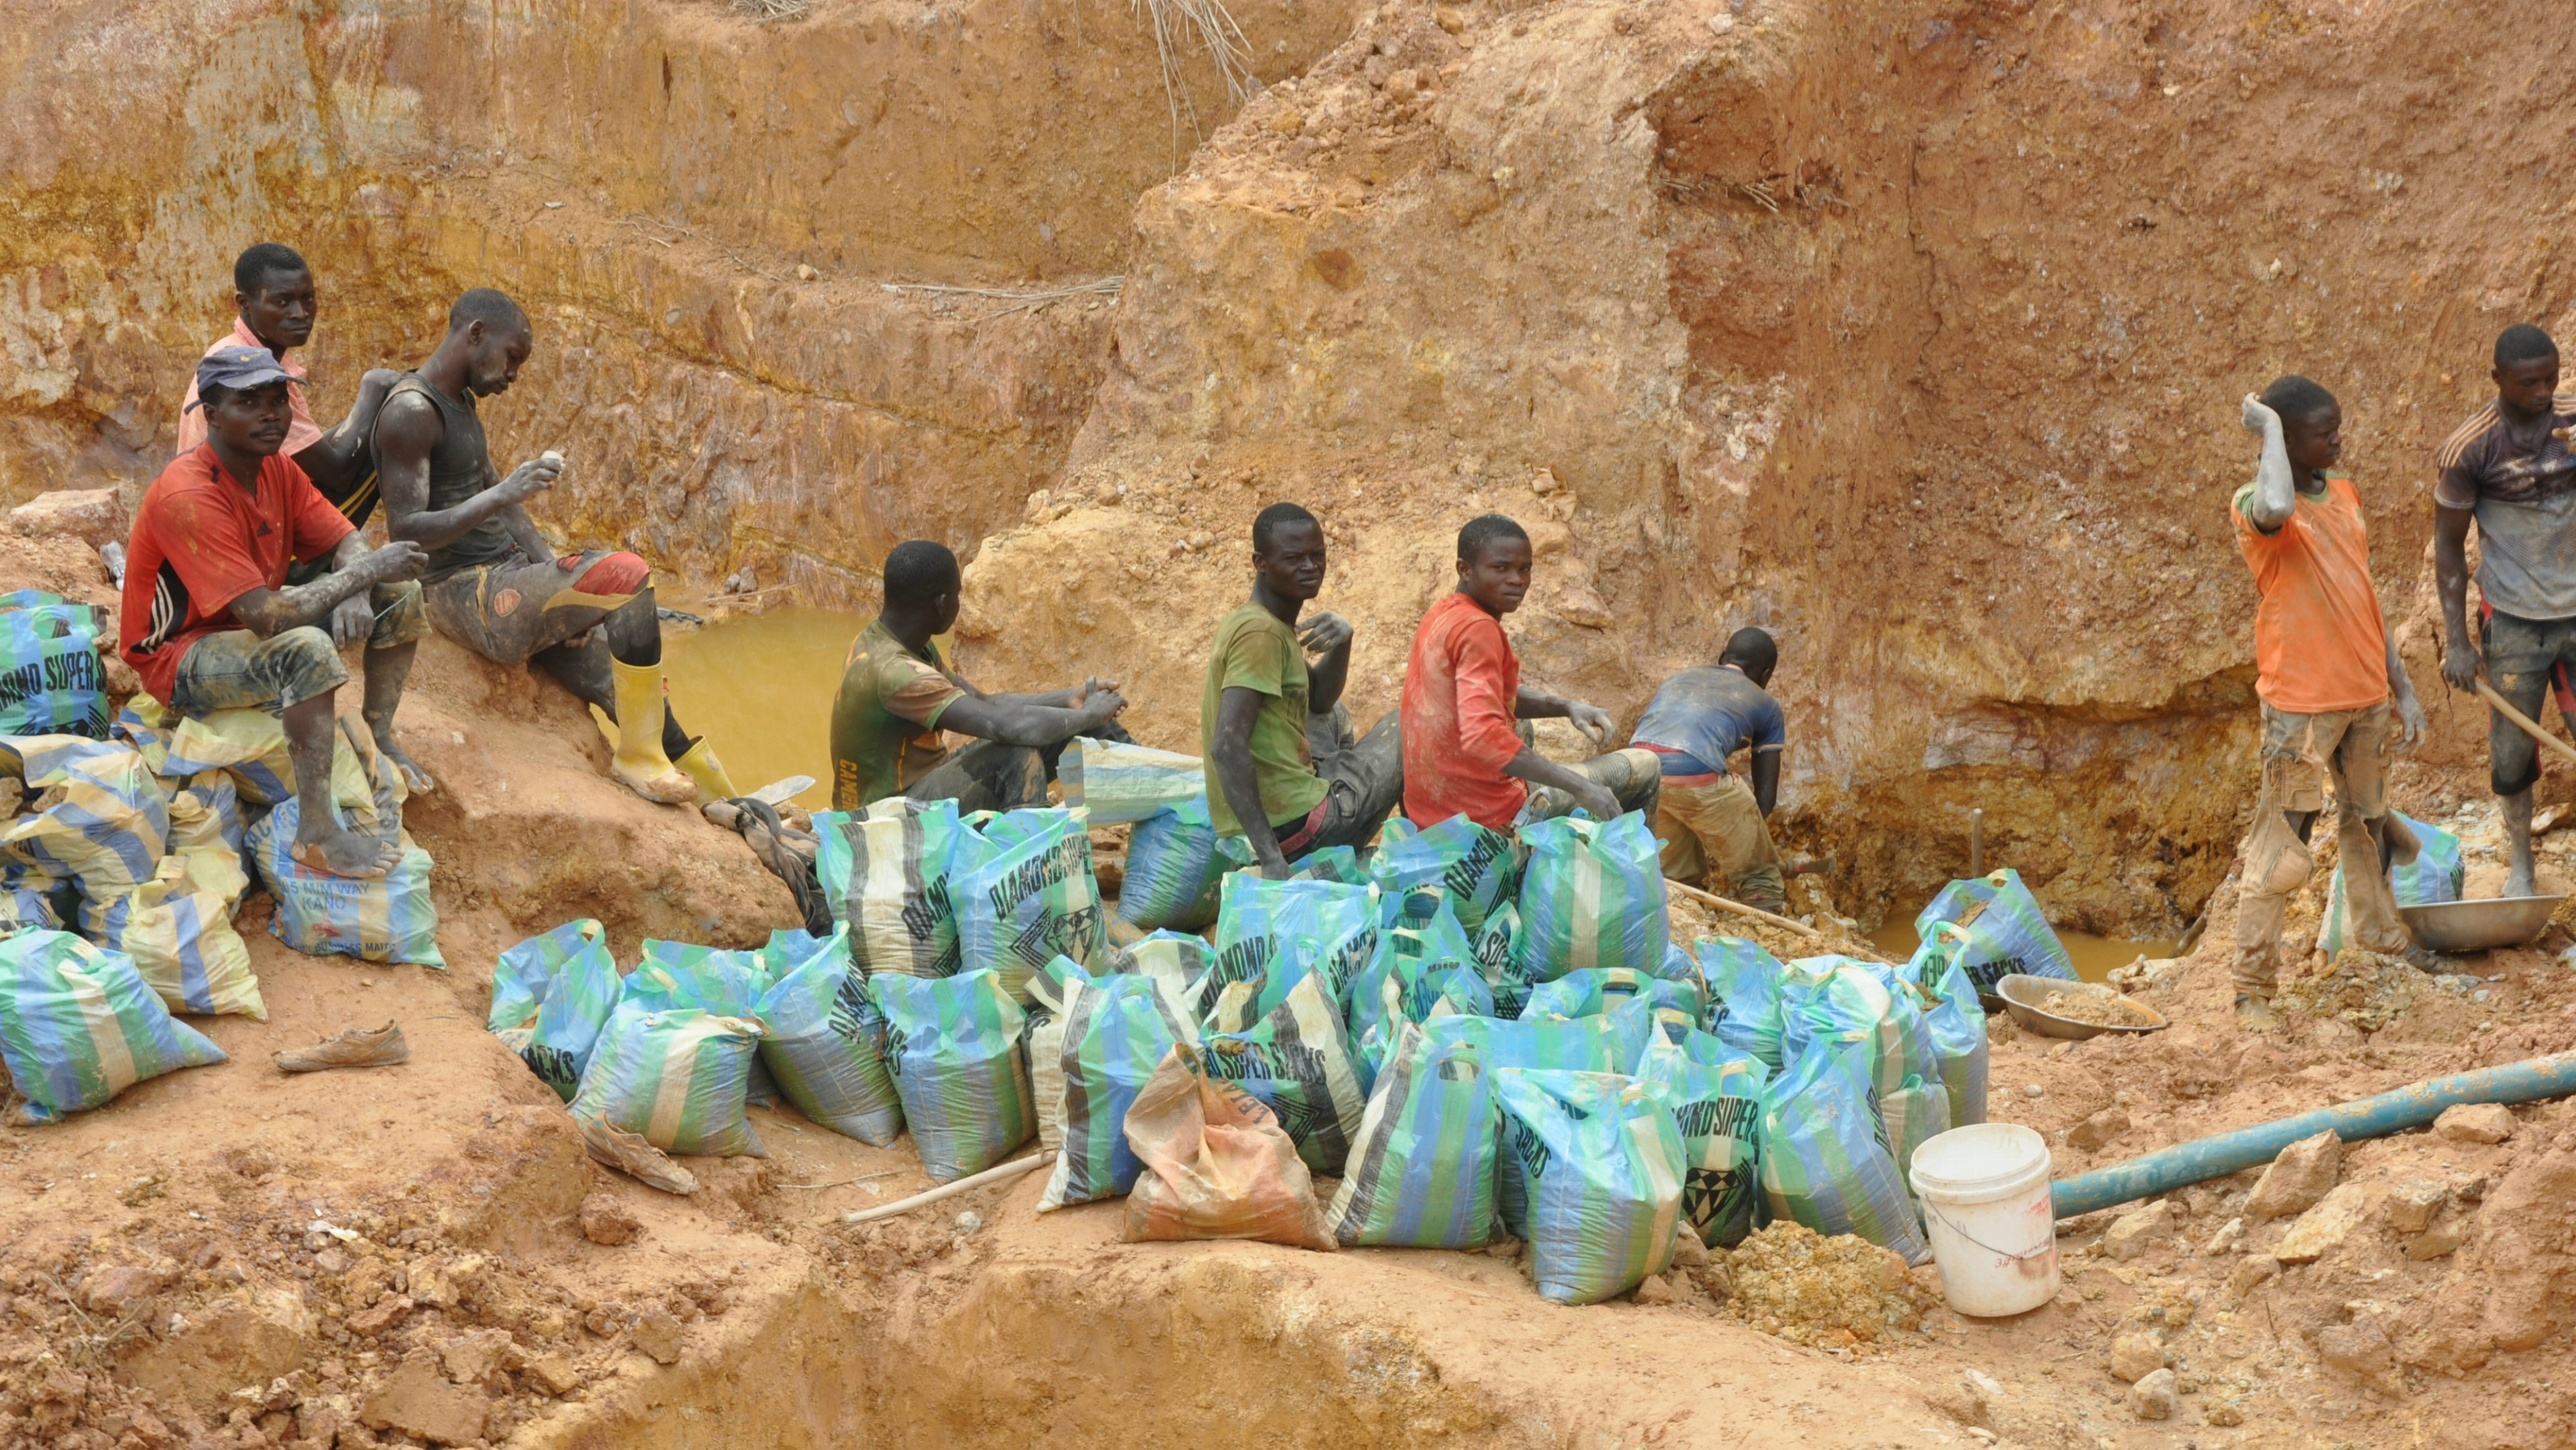 Local miners fill bags with gravel extracted from holes dug by Chinese mining machines in Ngoe Ngoe, Cameroon, Feb. 15, 2018.